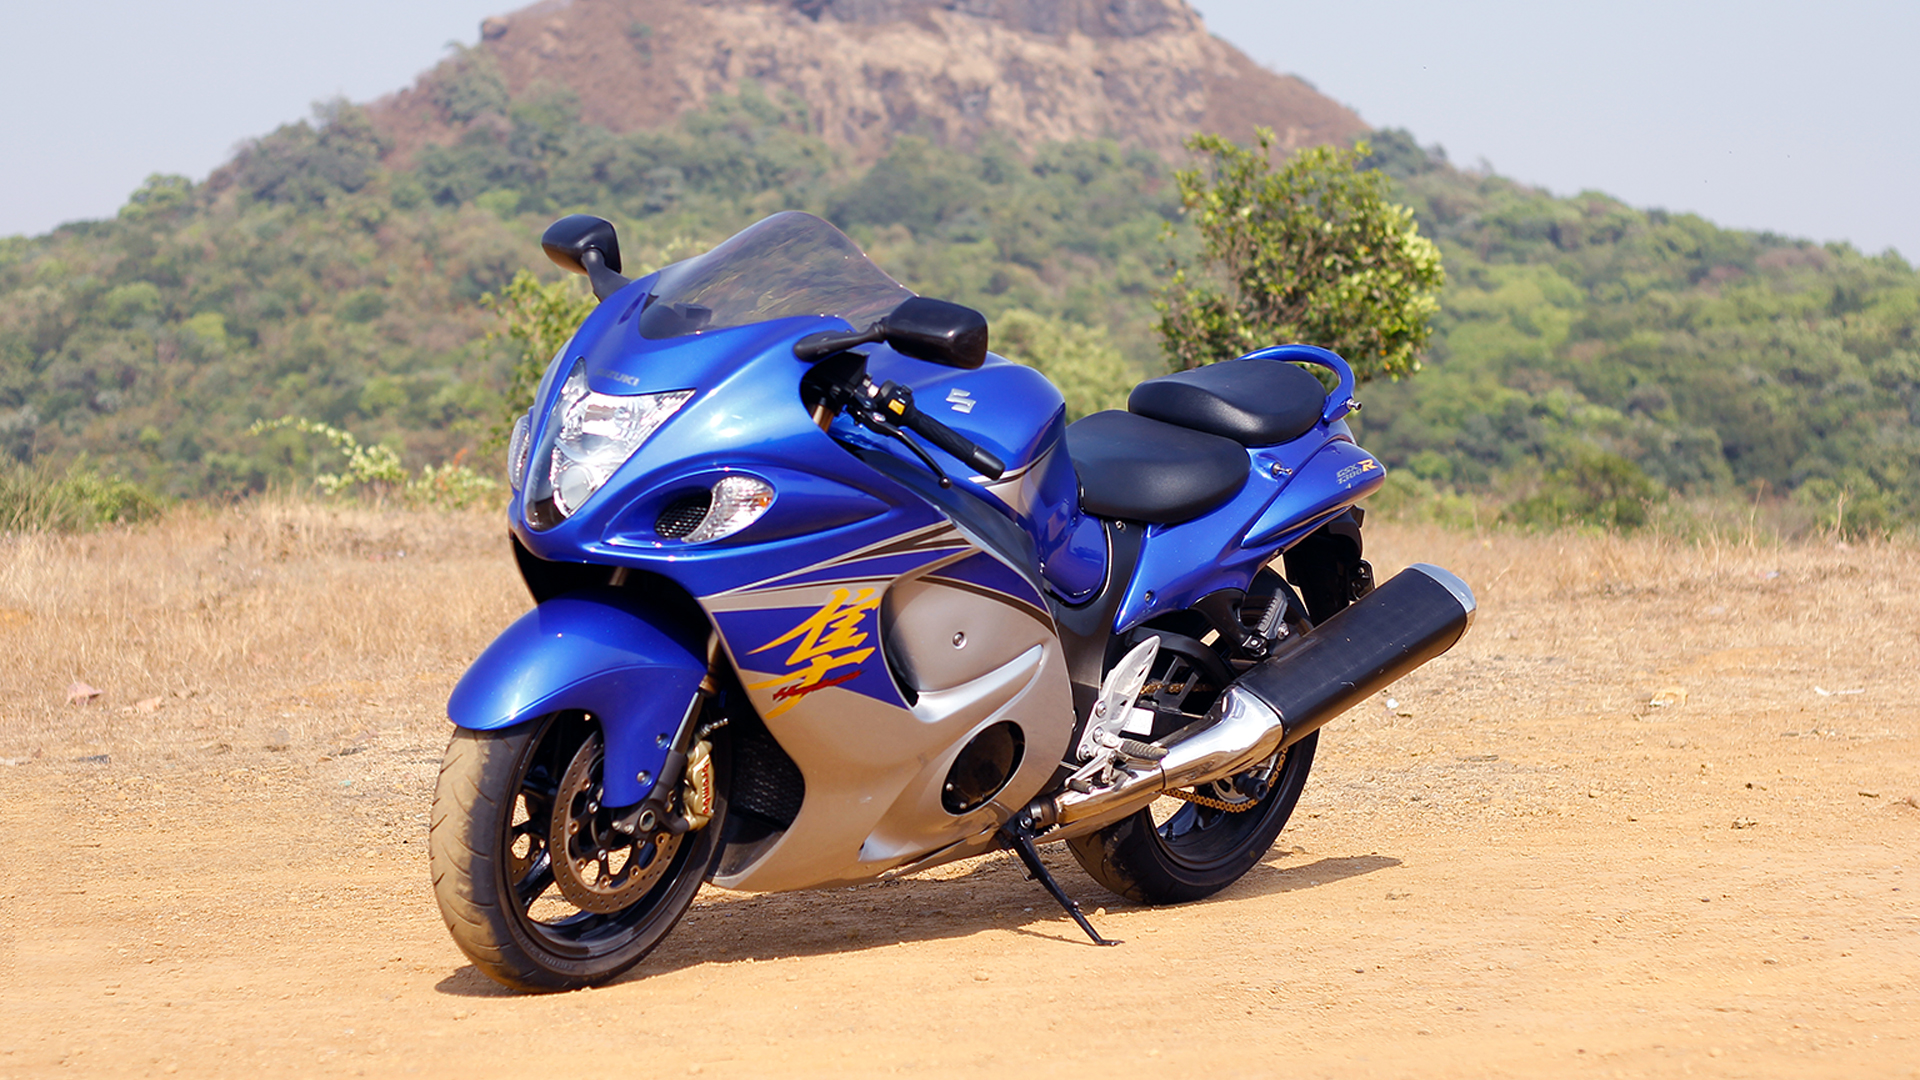 Suzuki GSX-R1300 Hayabusa 2018 - Price, Mileage, Reviews ...